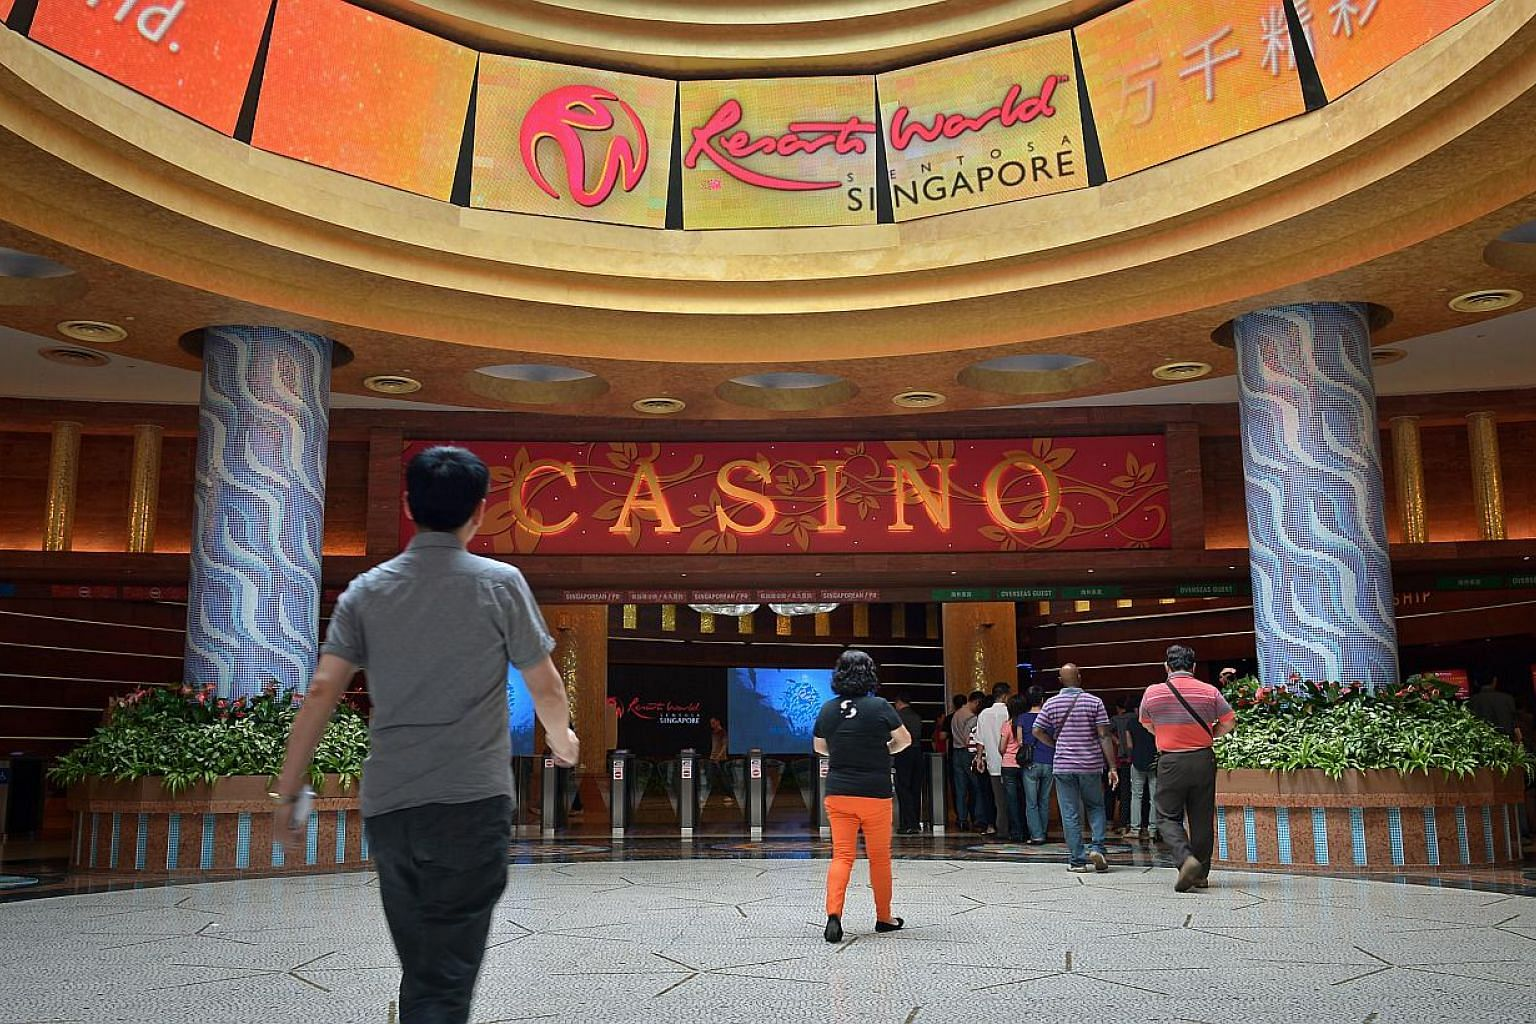 Genting Singapore's net profit to plunged 73 per cent from a year ago to $62.7 million for the first quarter, while revenues fell 23 per cent to $639.2 million, due to continued weakness in its premium player business. -- PHOTO: ST FILE